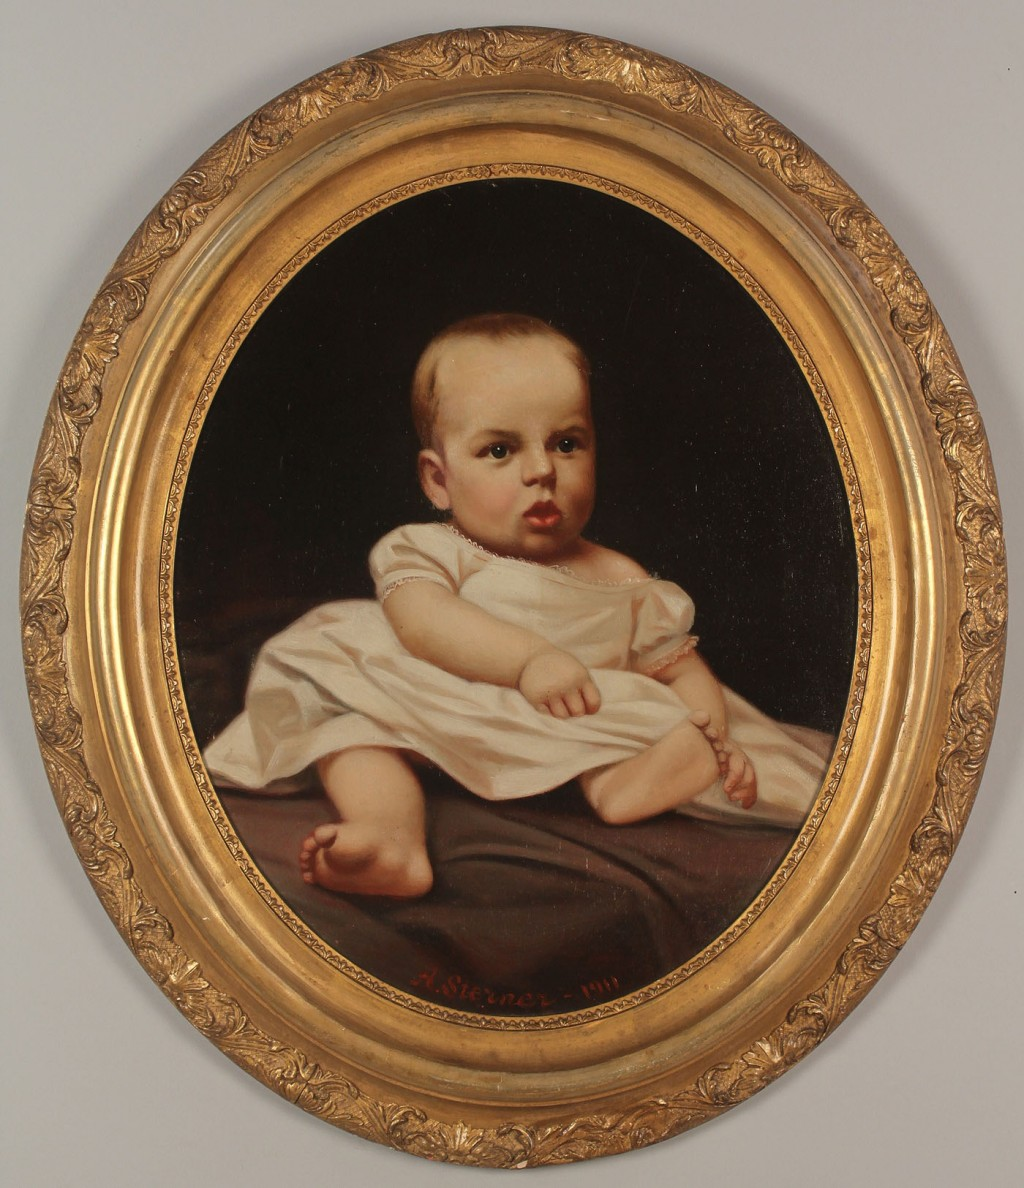 Lot 434: Albert Sterner oil on canvas, portrait of a child